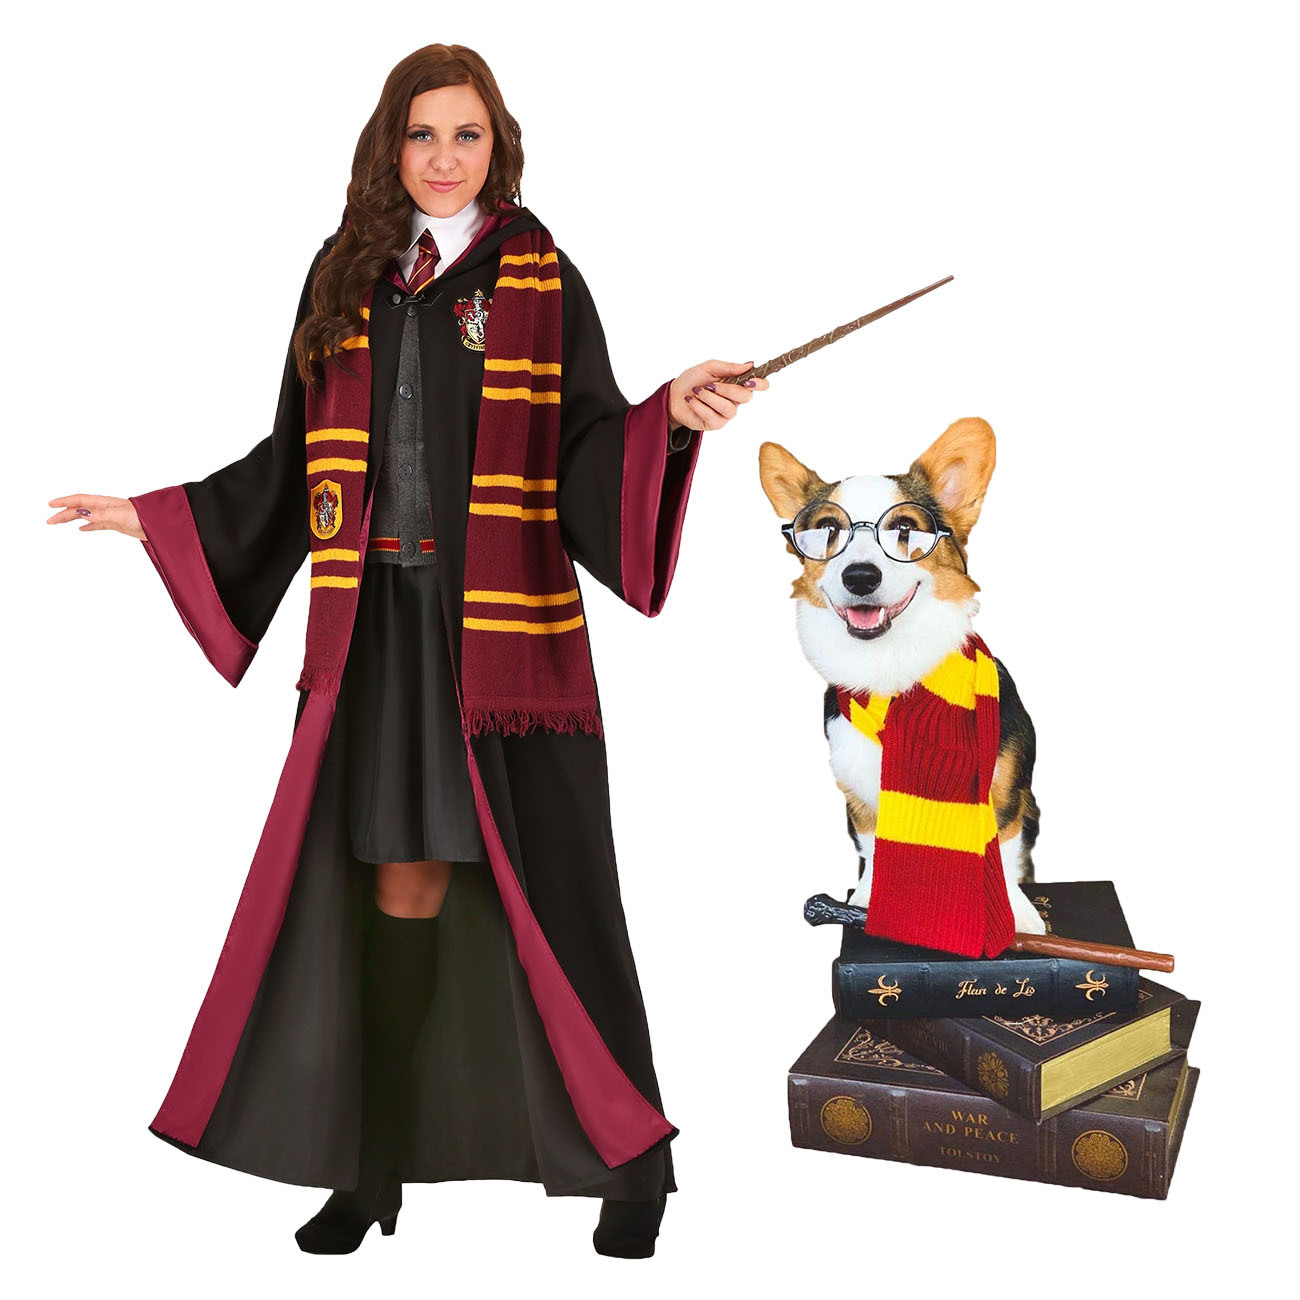 Harry Potter dog scarf and Hermione adult womens Halloween costume